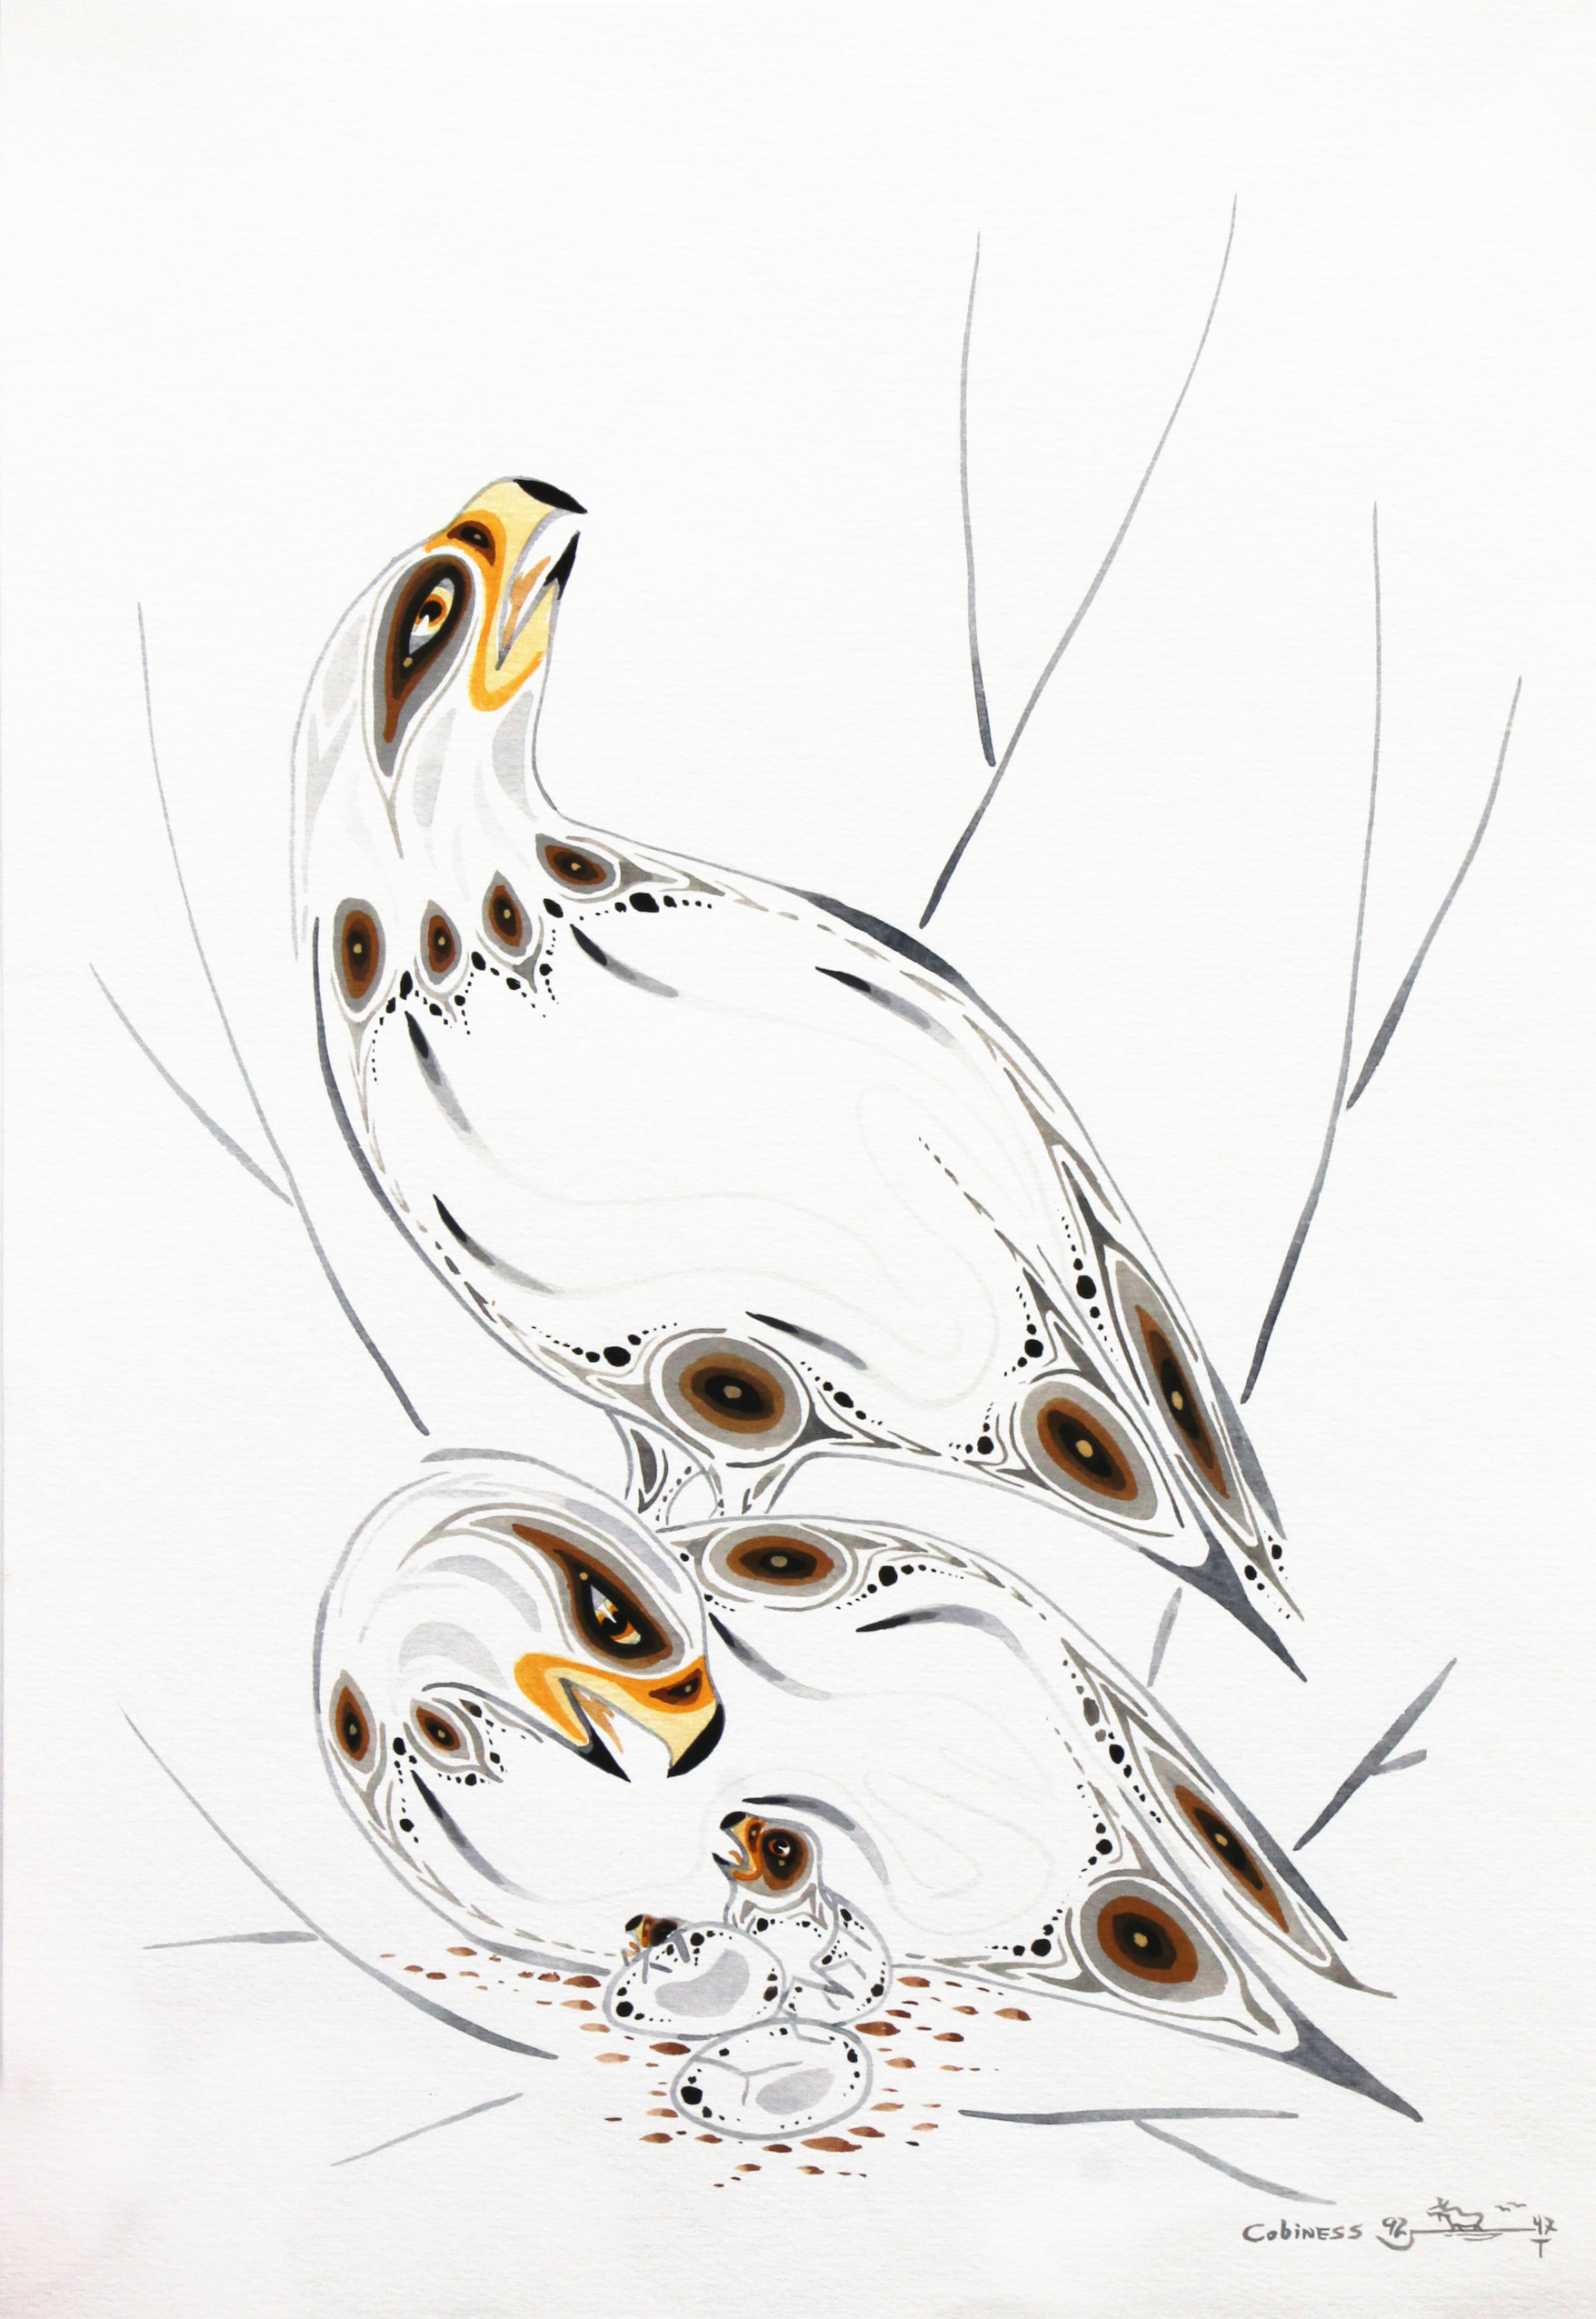 A watercolour painting of two eagles and their babies by Anishinaabe artist, Eddy Cobiness. Image is mostly white with very detailed lines and patterns used to create the shapes of the eagles.